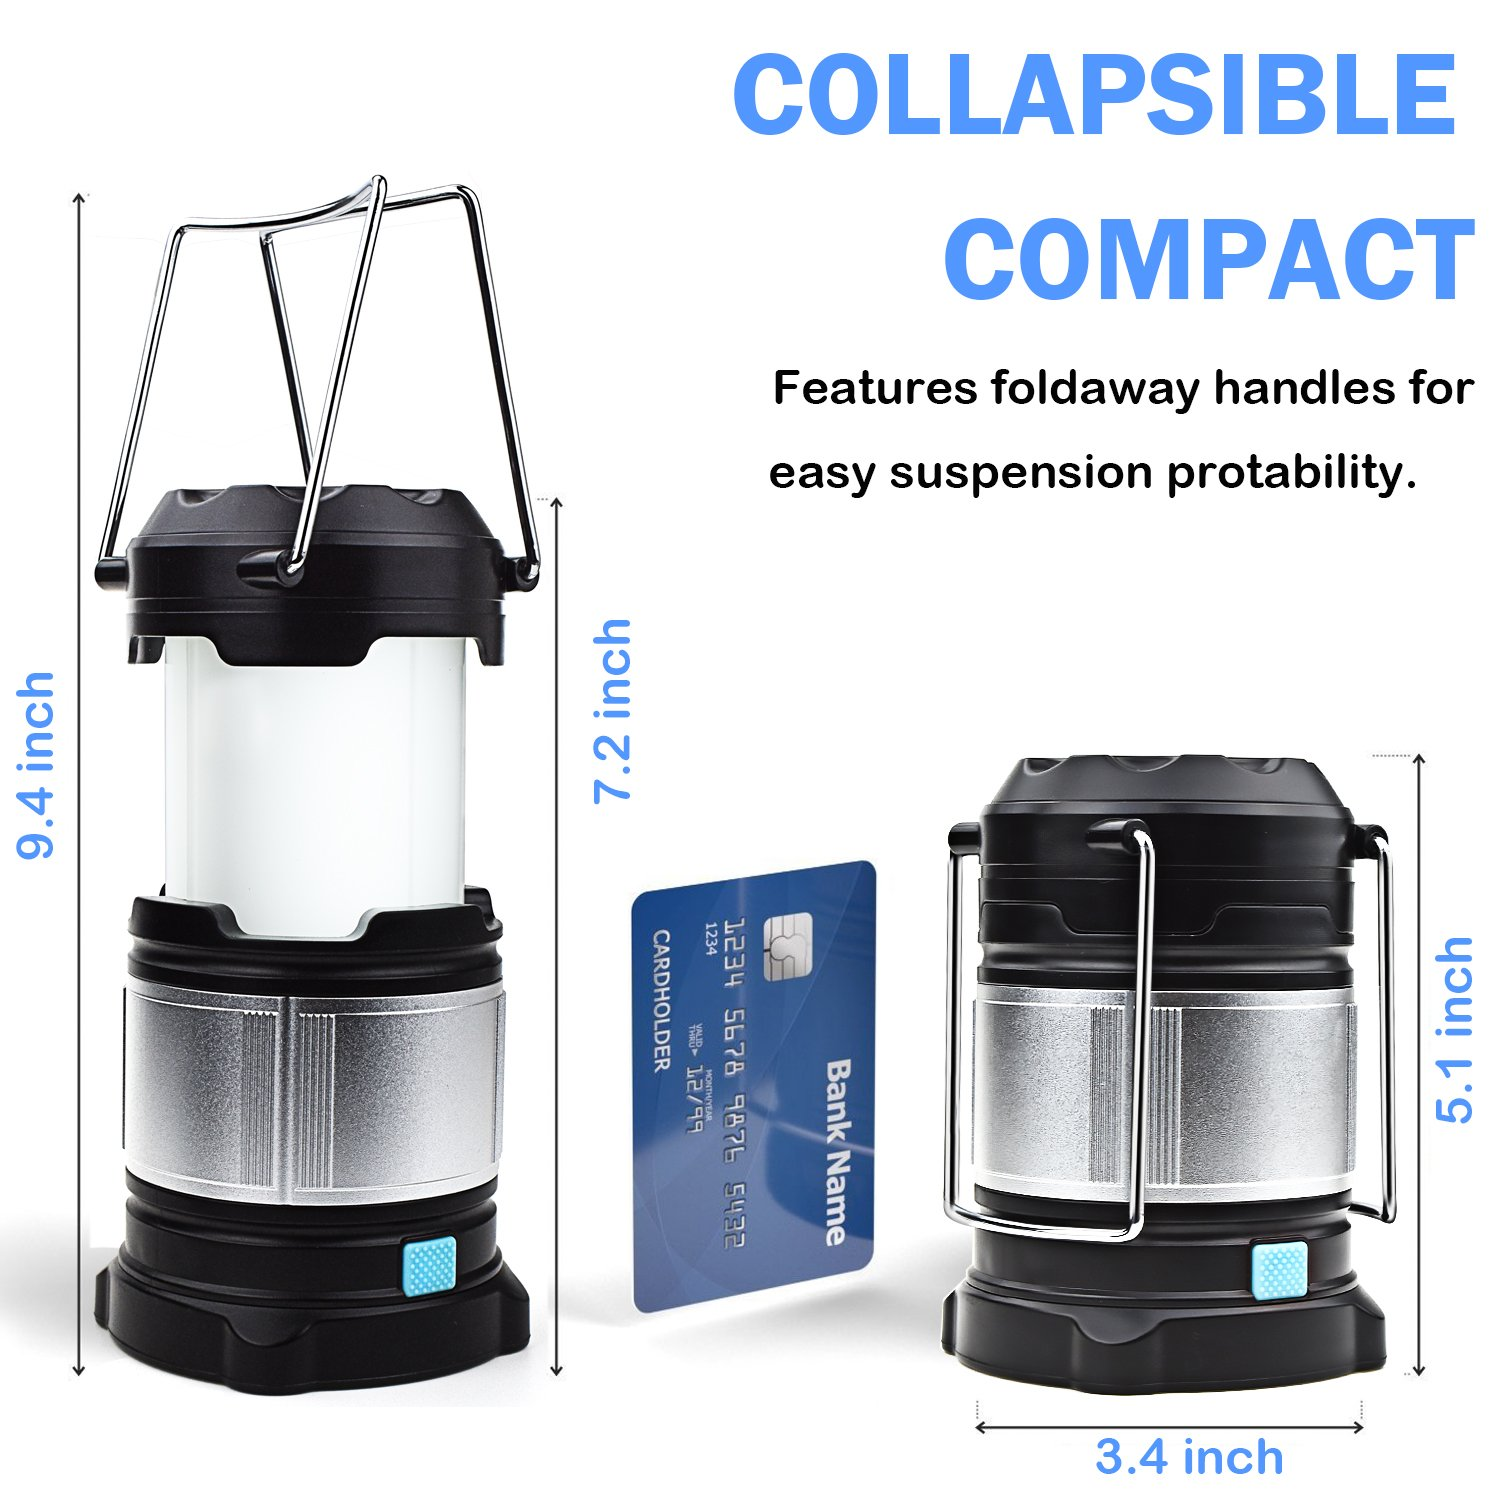 Alcoon 2 Packs Rechargeable LED Camping Lantern Light Lamp with 5600mAh Power Bank, Portable Collapsible Waterproof Outdoor Light with 18650 Li-ion Batteries for Camping Traveling Tent, Emergency by Alcoon (Image #3)